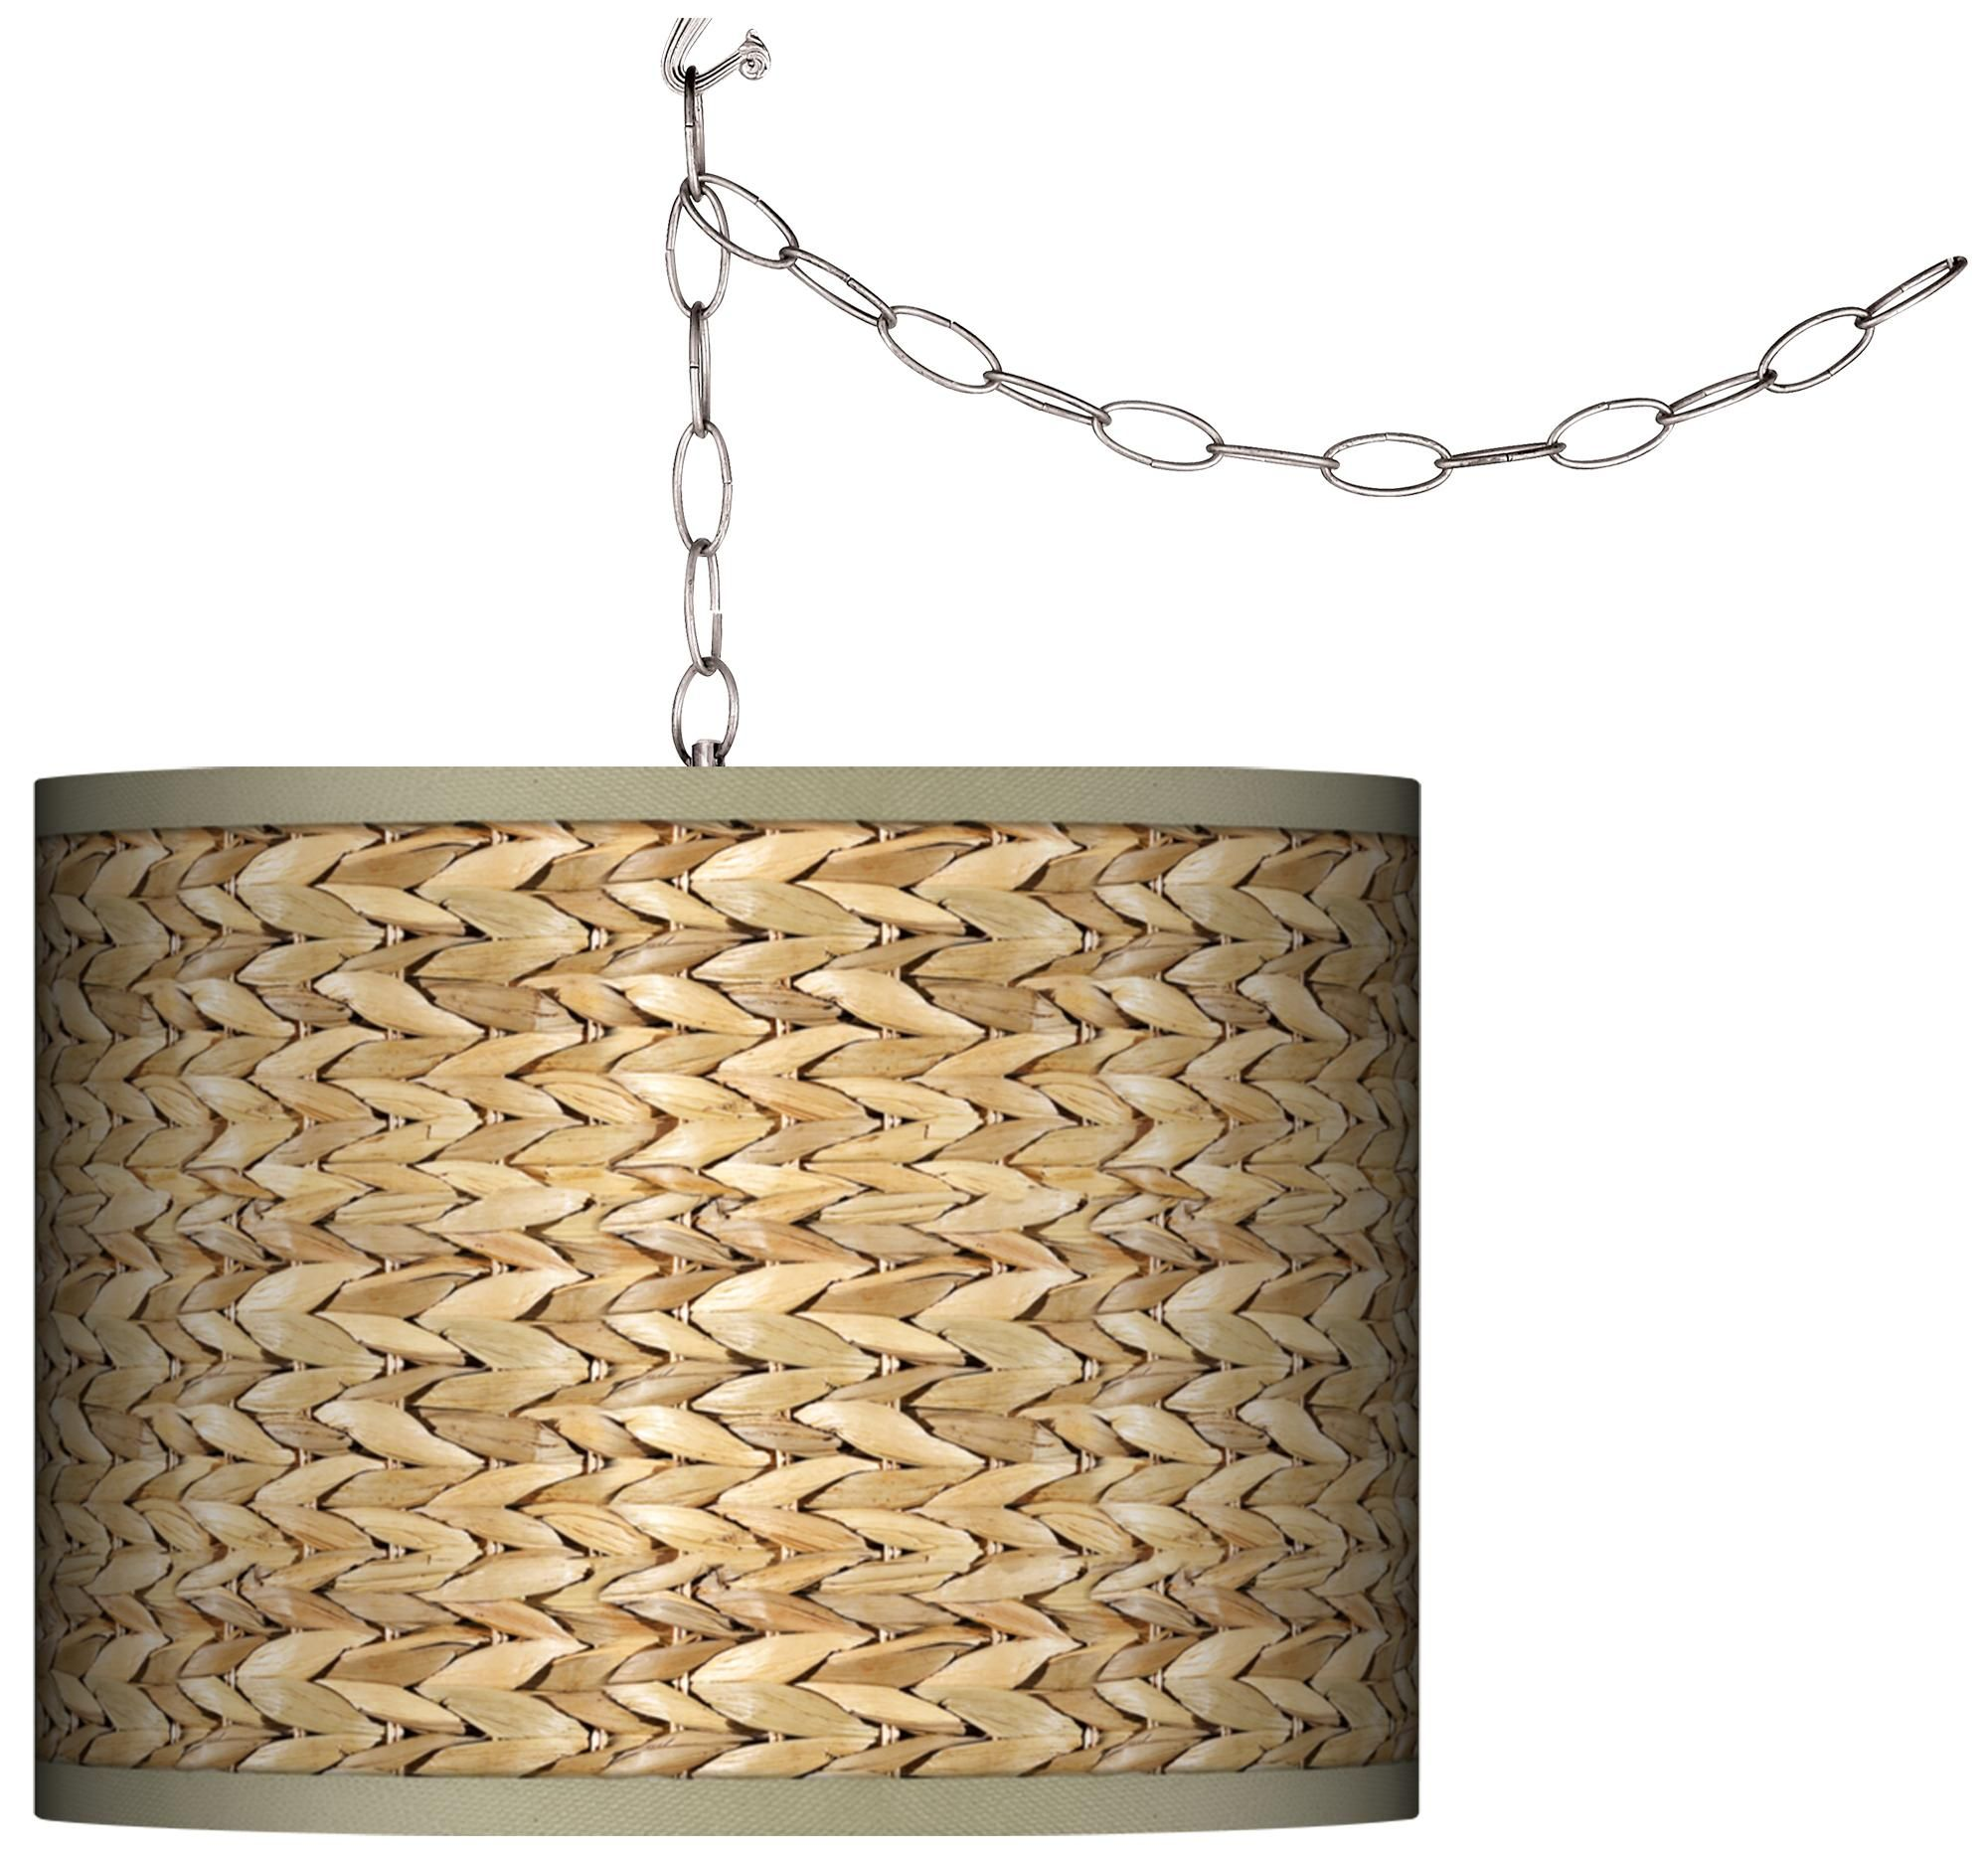 Seagrass Print Pattern 13 1 2 Wide Plug In Swag Chandelier 27g17 Lamps Plus Plug In Chandelier Plug In Pendant Light Swag Chandelier